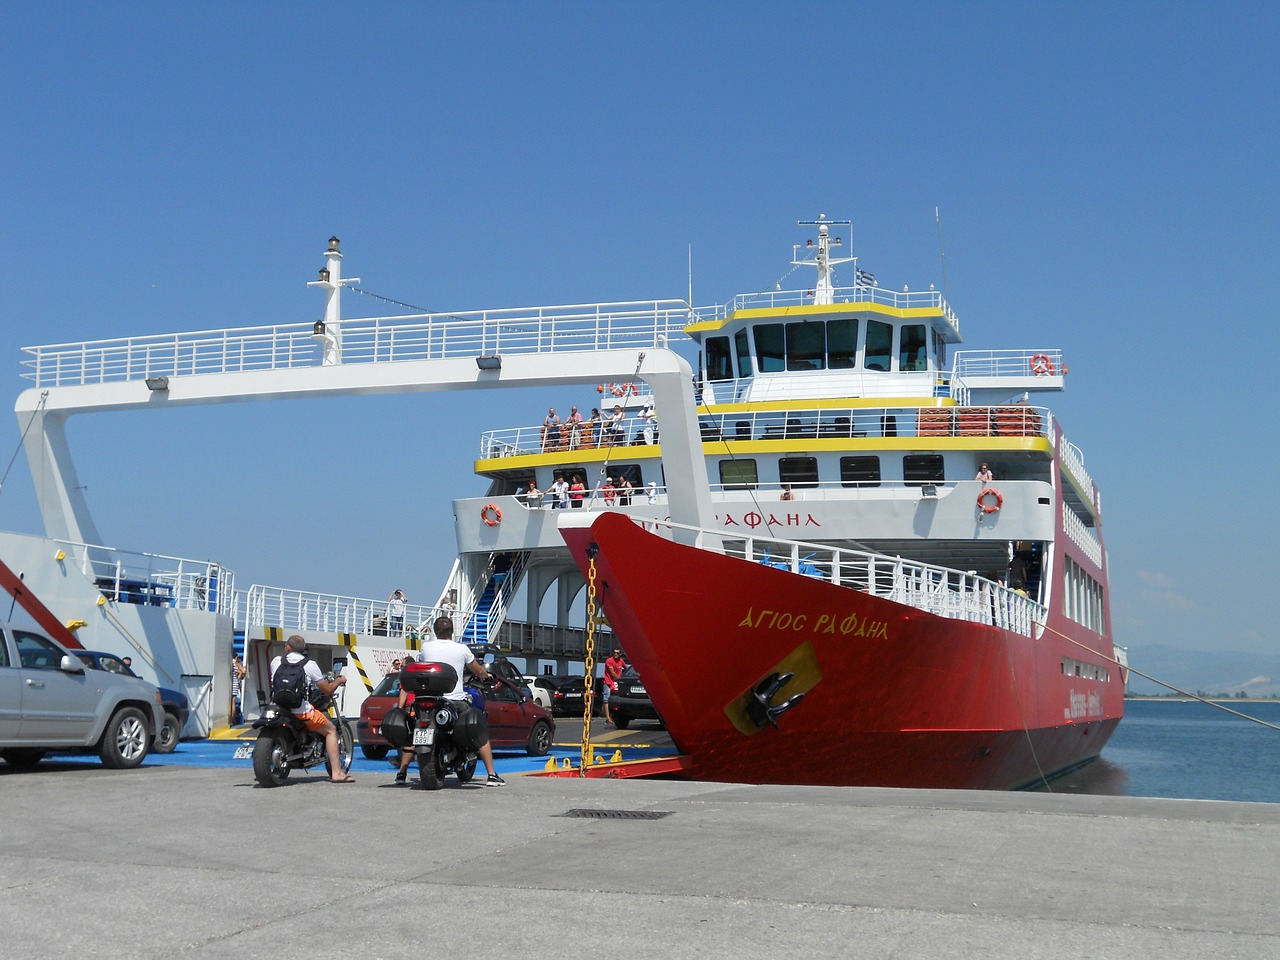 A red Greek ferry arriving at an island